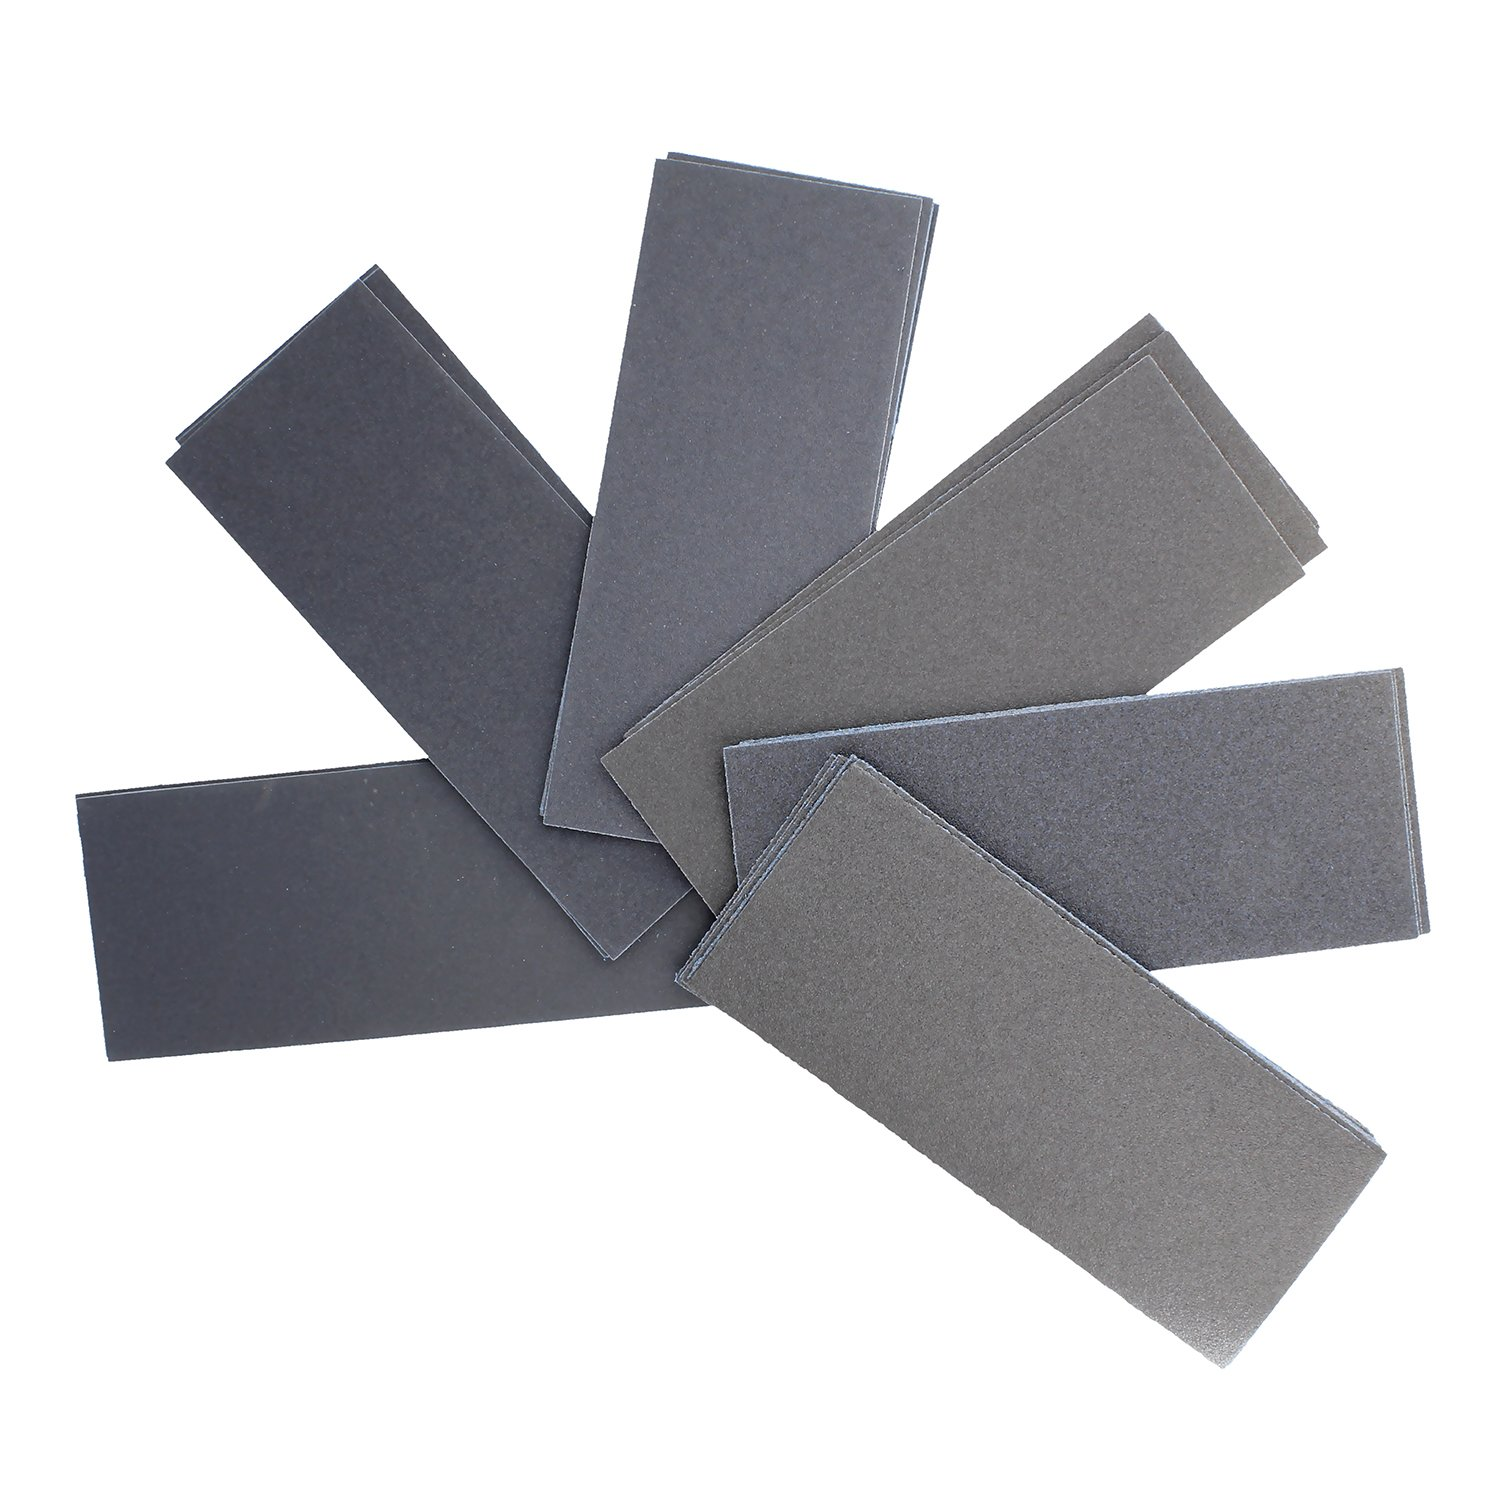 "9/"" x 3.6/"" Inch Sandpaper Sheets Variety Pack ABN/® 80 Grit to 3000 Grit Sandpaper 102pc Wet Dry Sandpaper Assortment"